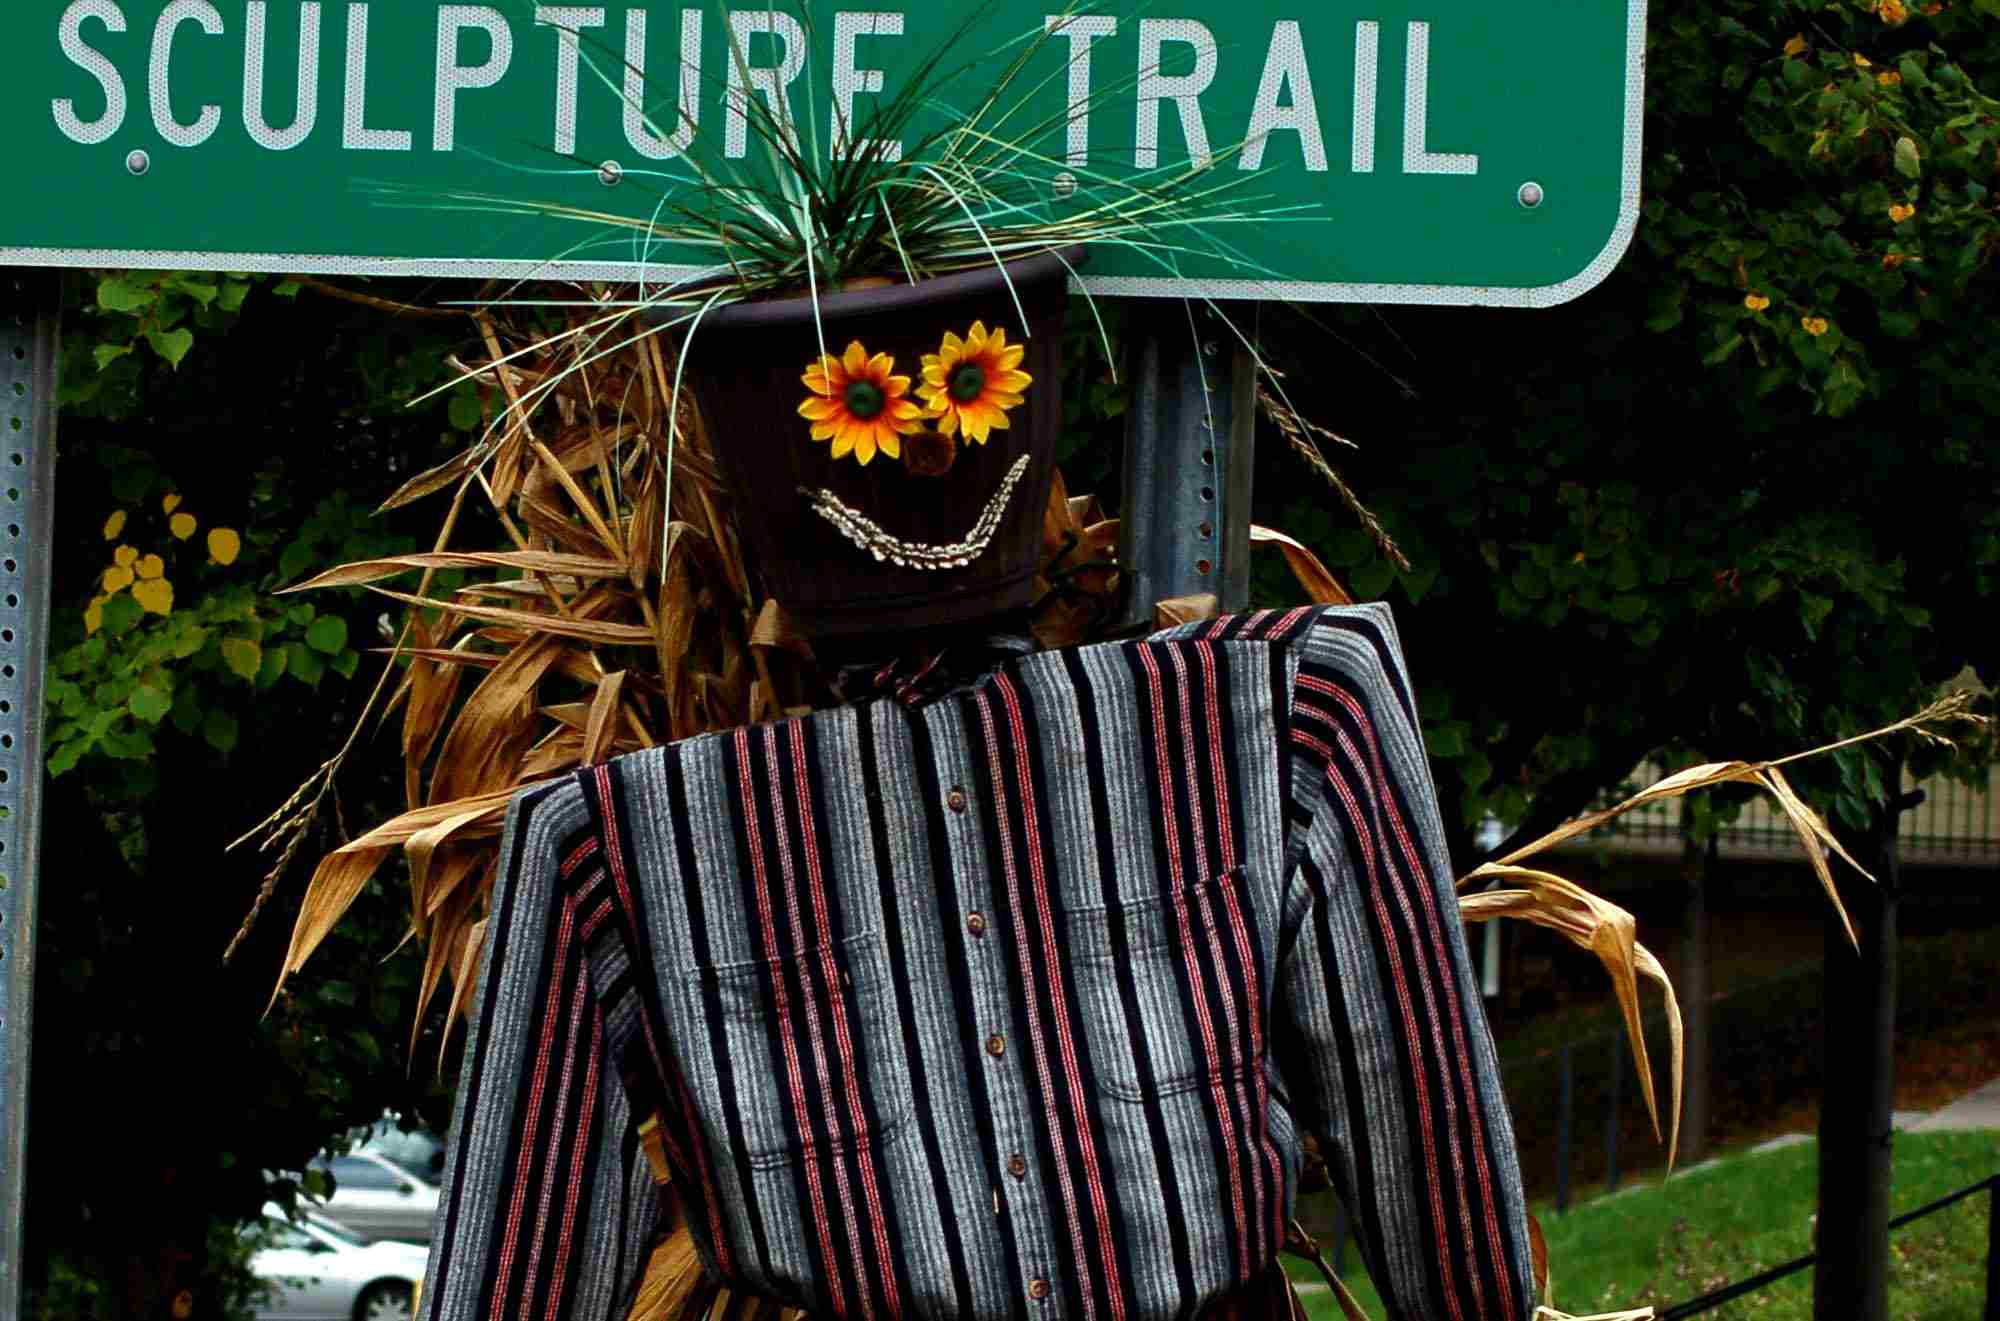 Scarecrow with a head functioning as a planter